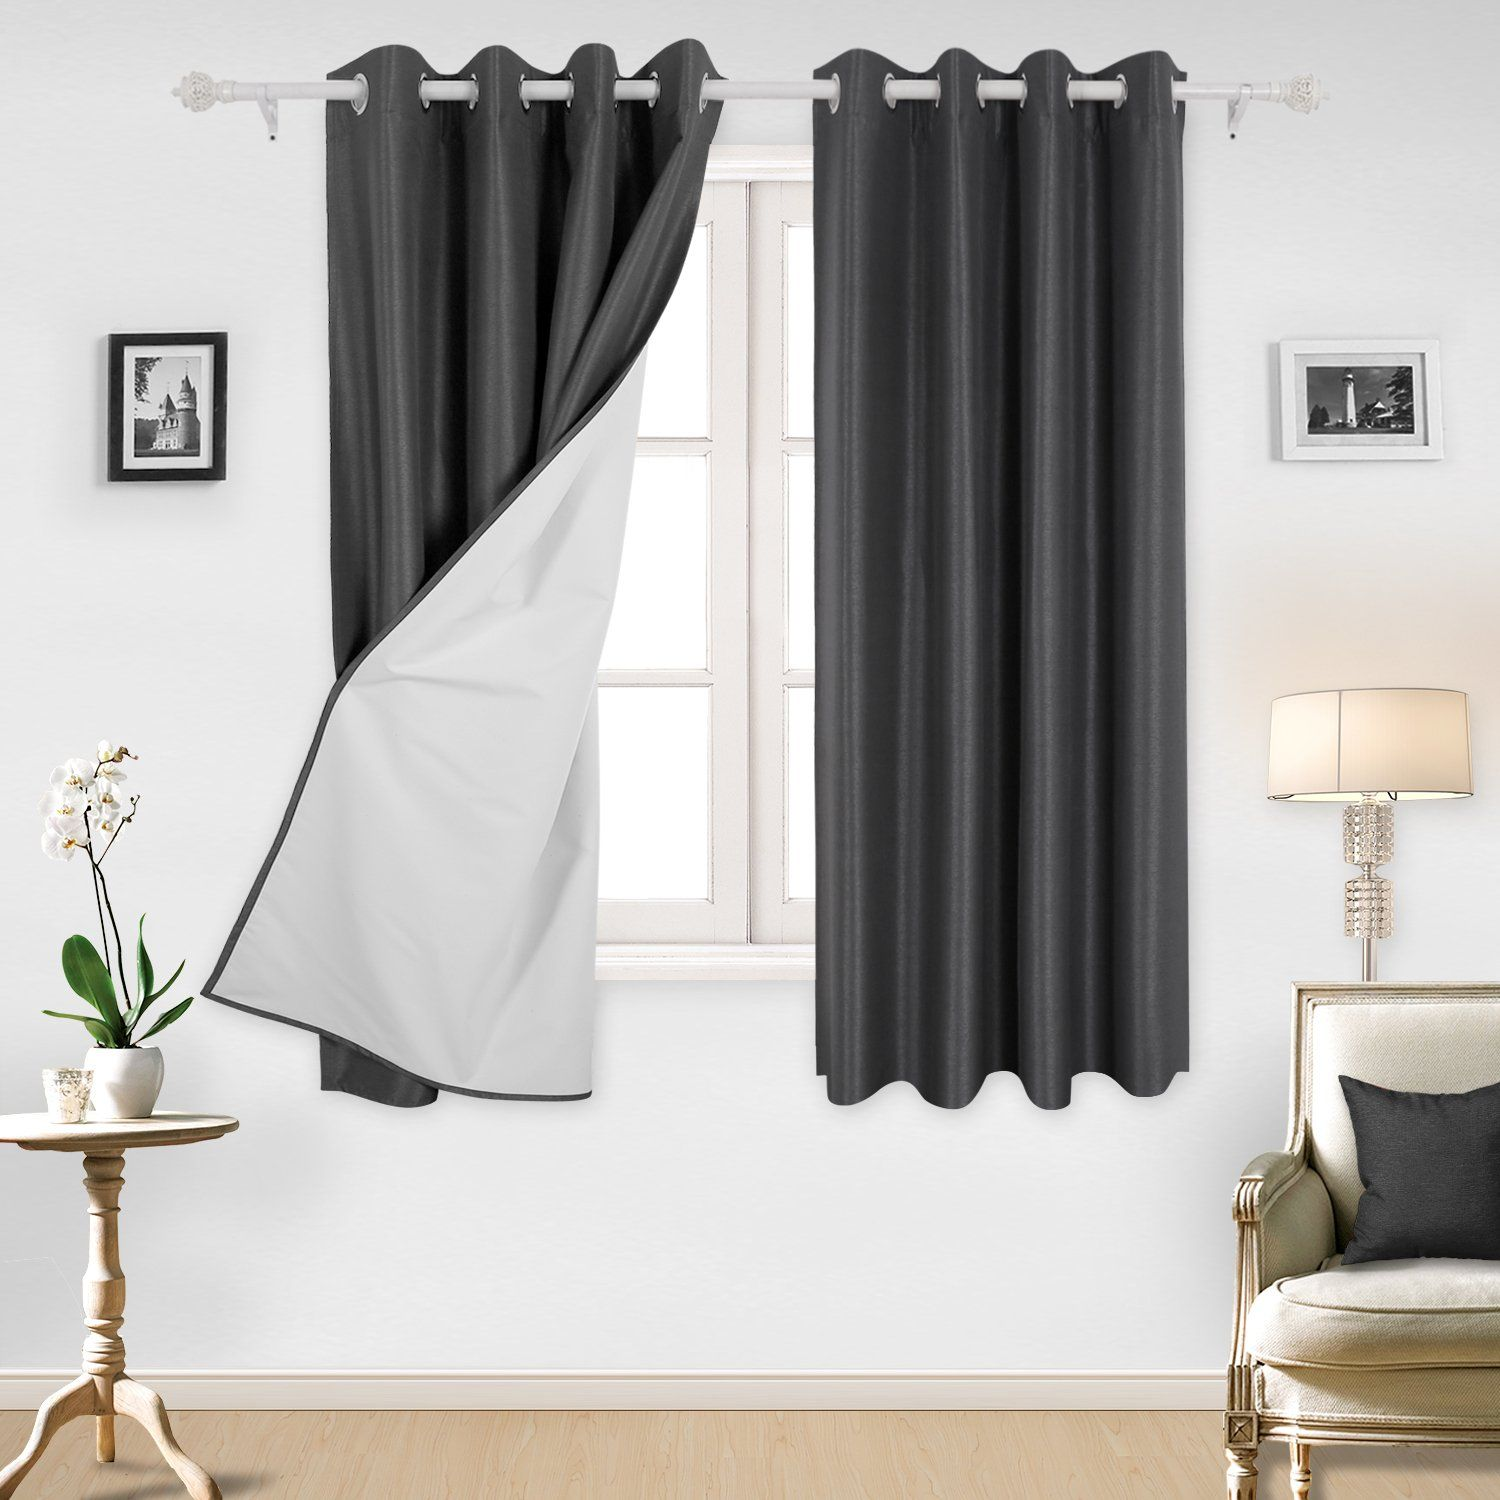 Deconovo Room Darkening Thermal Insulated Grommet Blackout Curtain Panels With White Lining For Living